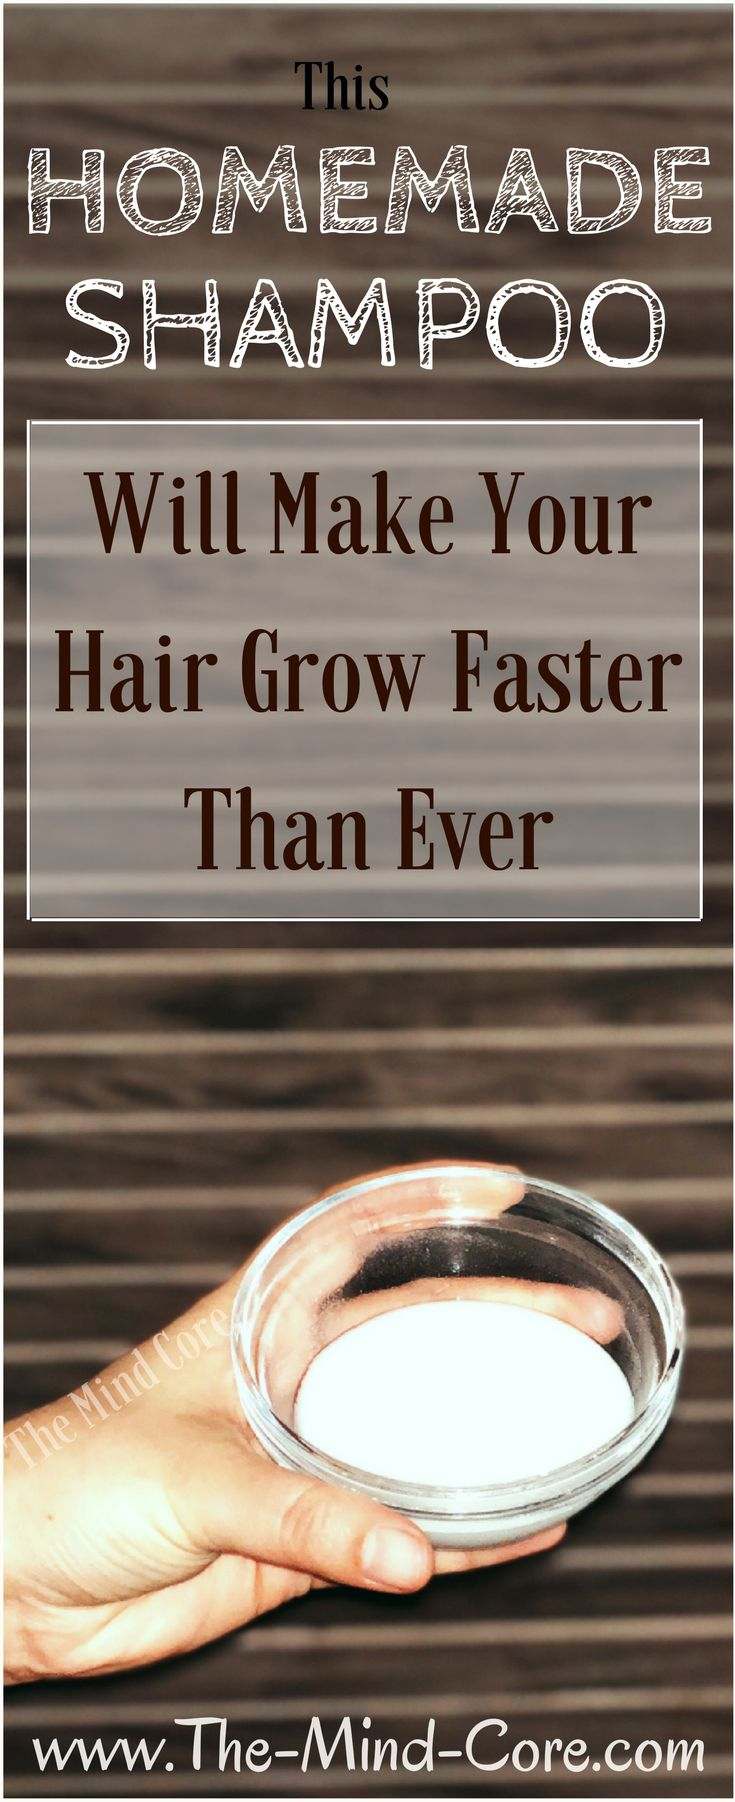 This HOMEMADE Shampoo Will Make Your Hair Grow Faster Than Ever( You Should Definitely Try It!)